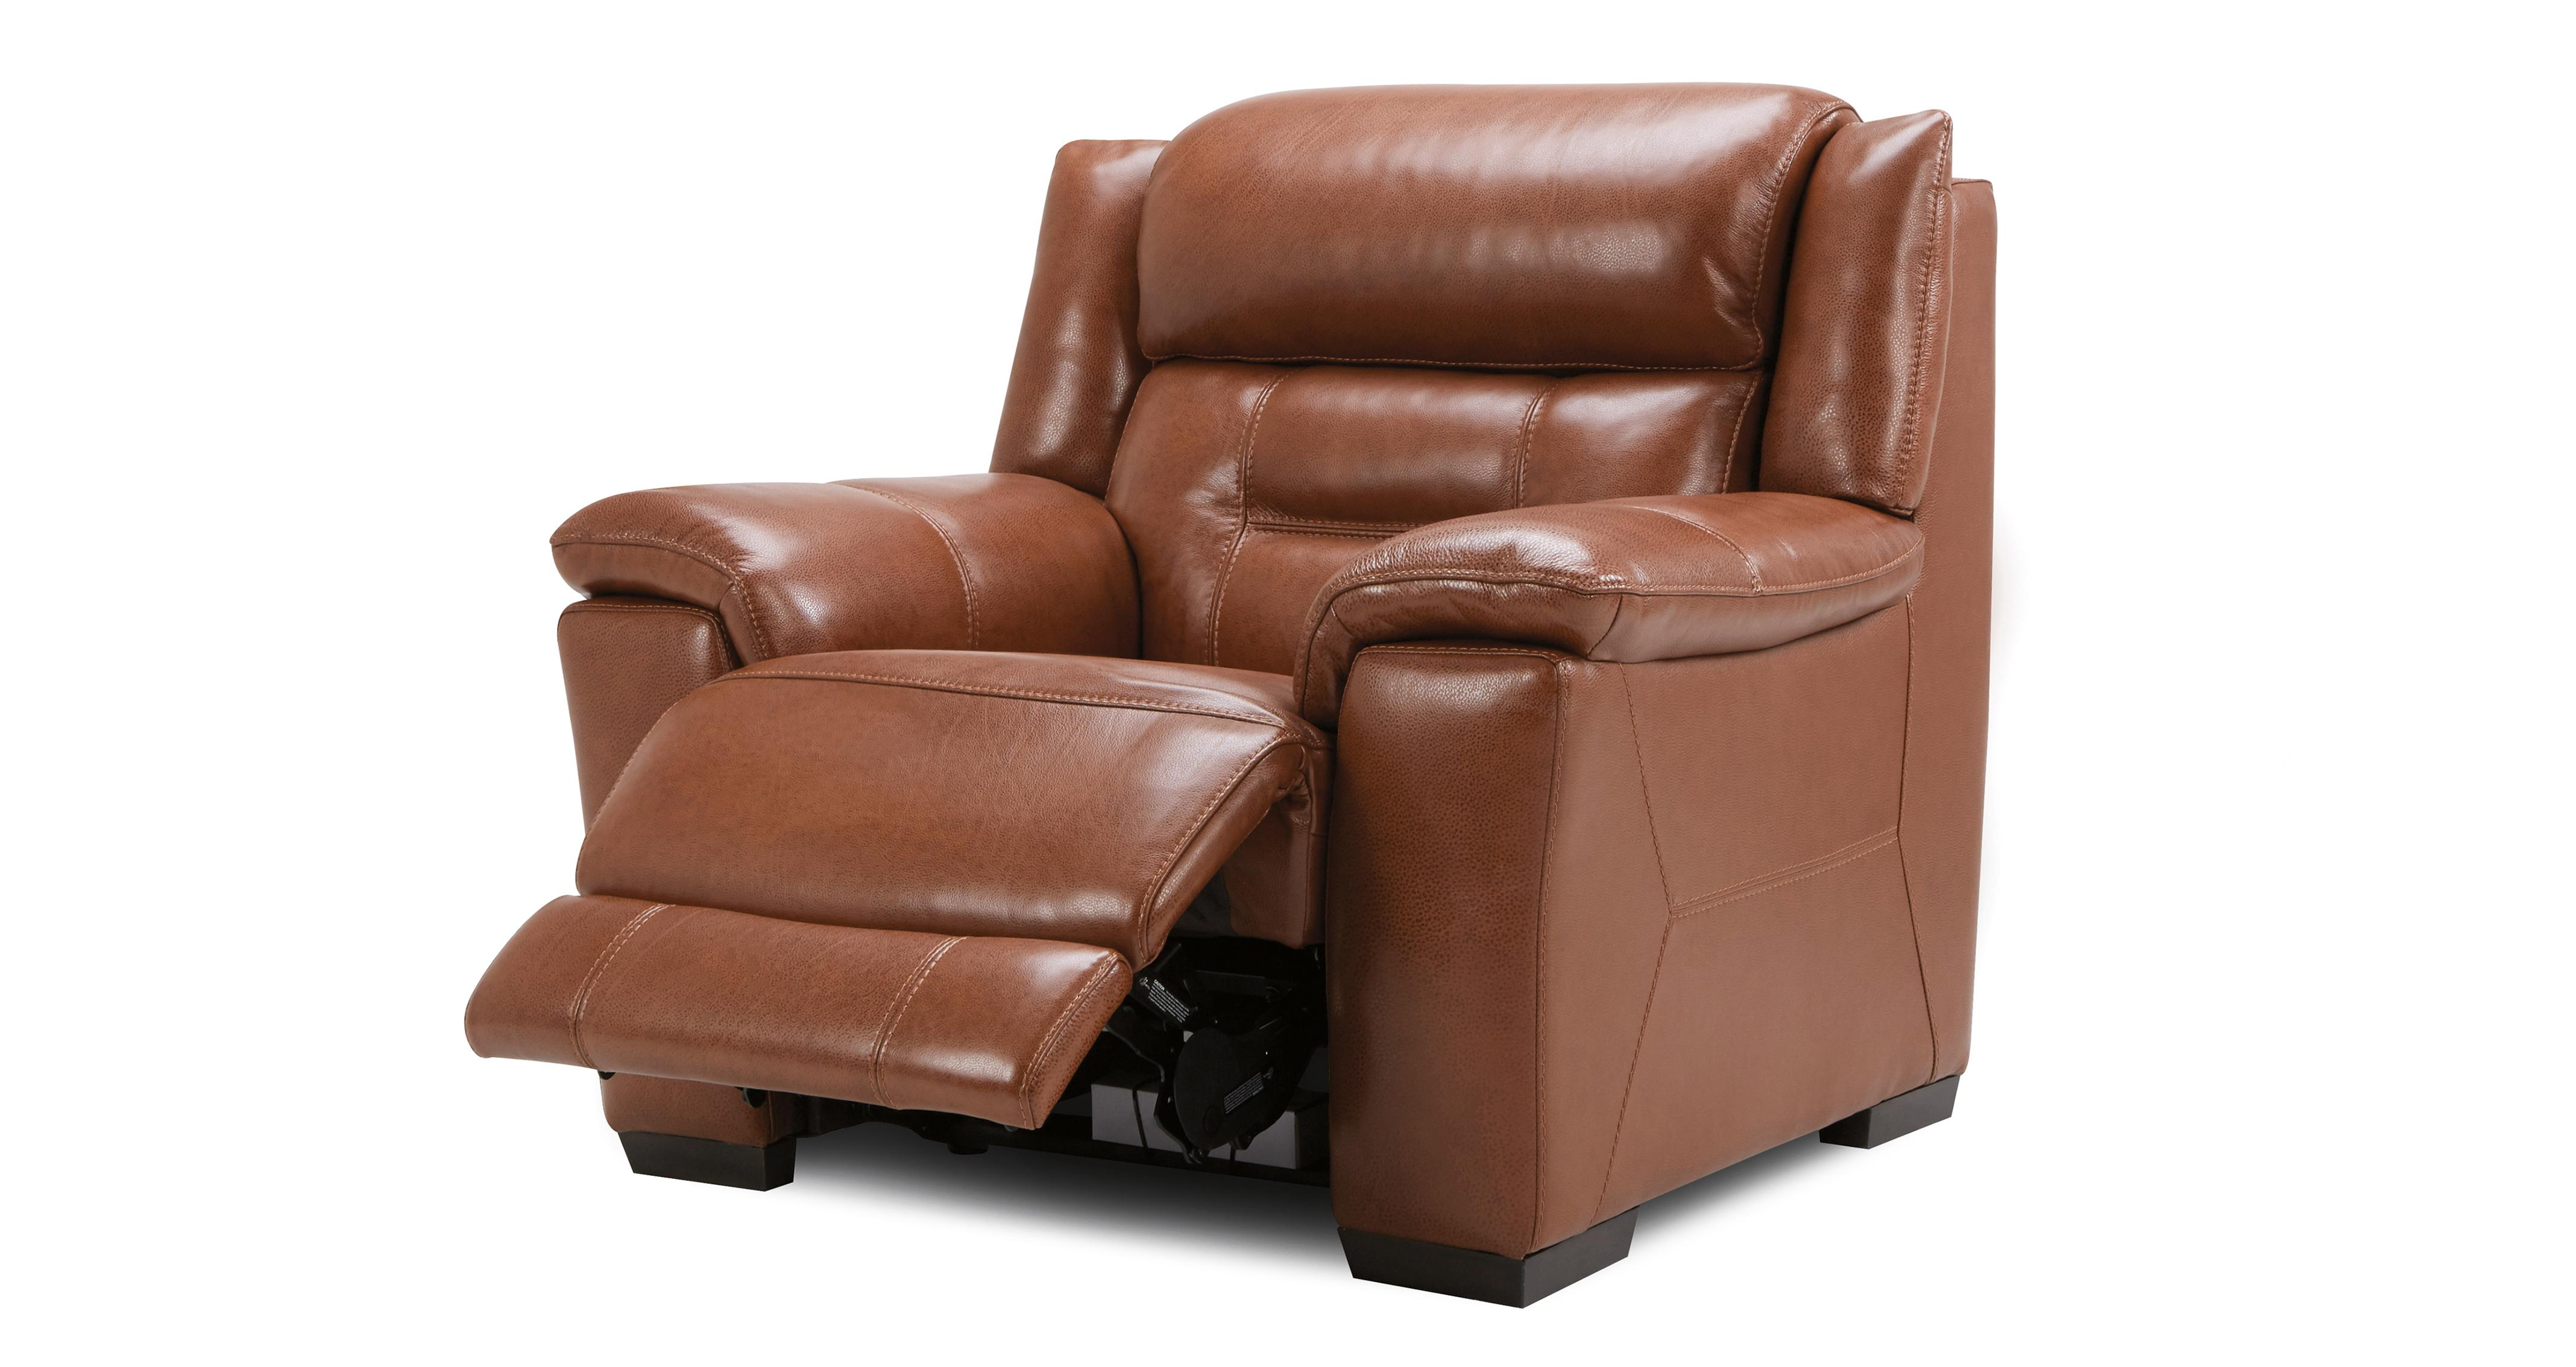 leather recliner chair styles of chairs upholstered locksley 3 seater manual brazil with look fabric dfs